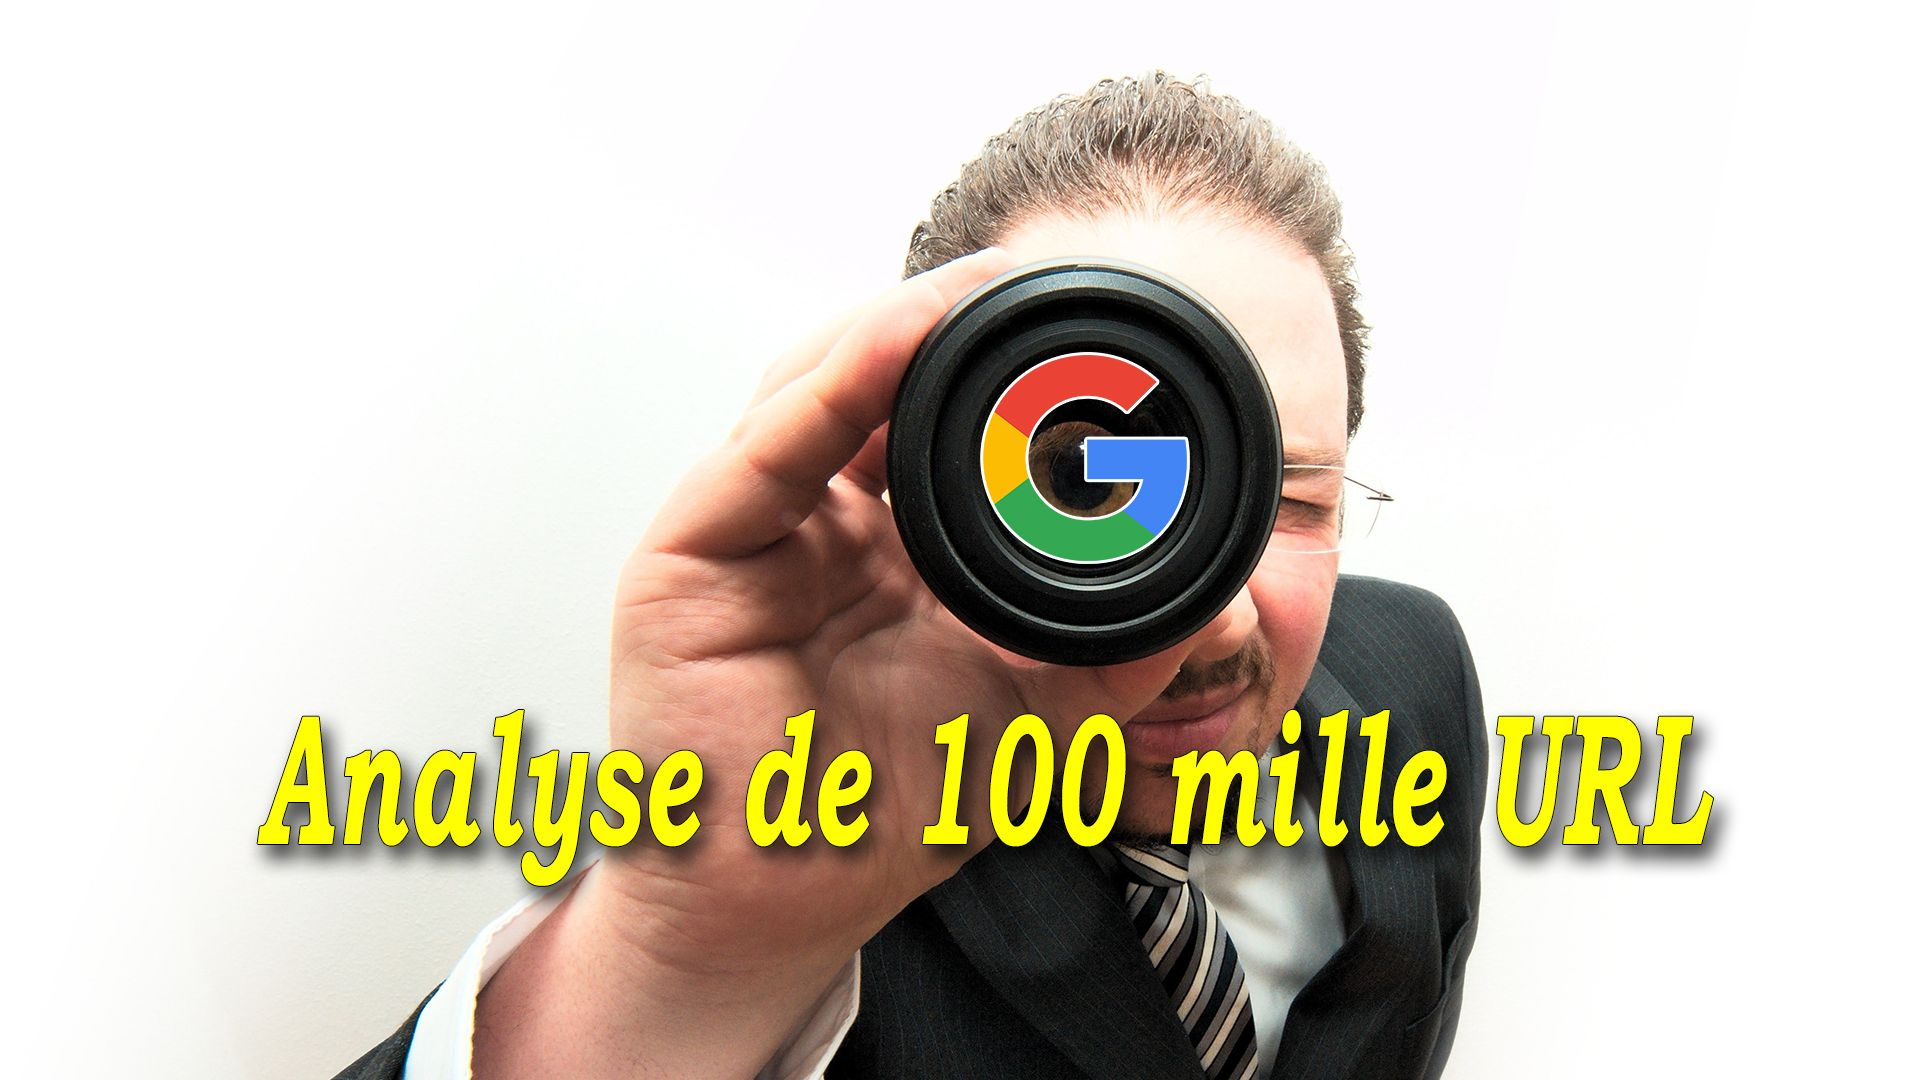 Analyse de 100 mille URL #GrowthHacking #WebMarketing #FormationGrowthHacking #CentreDeFormationFrance #TunnelAARRR #AARRR #SocialMedia #CommunityManagement #SEO #GoogleSEO